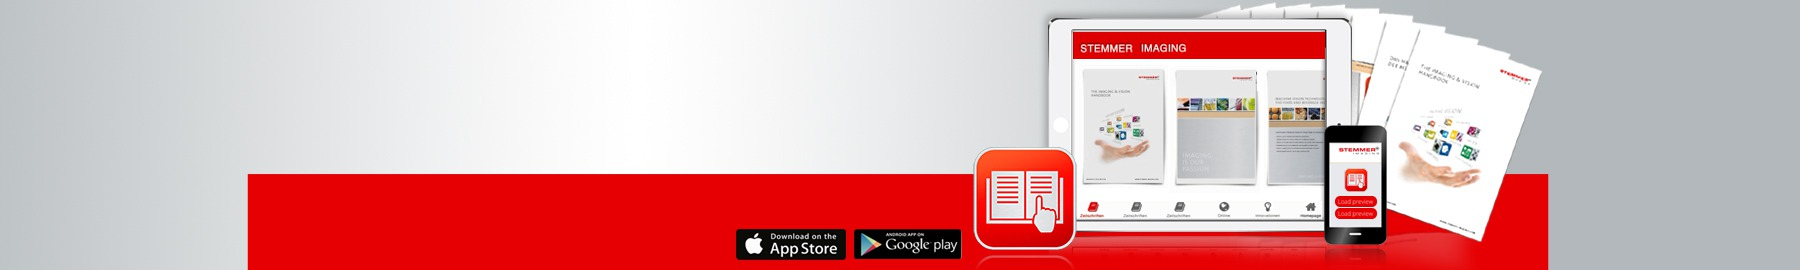 Vision Docs - All your documents in one place